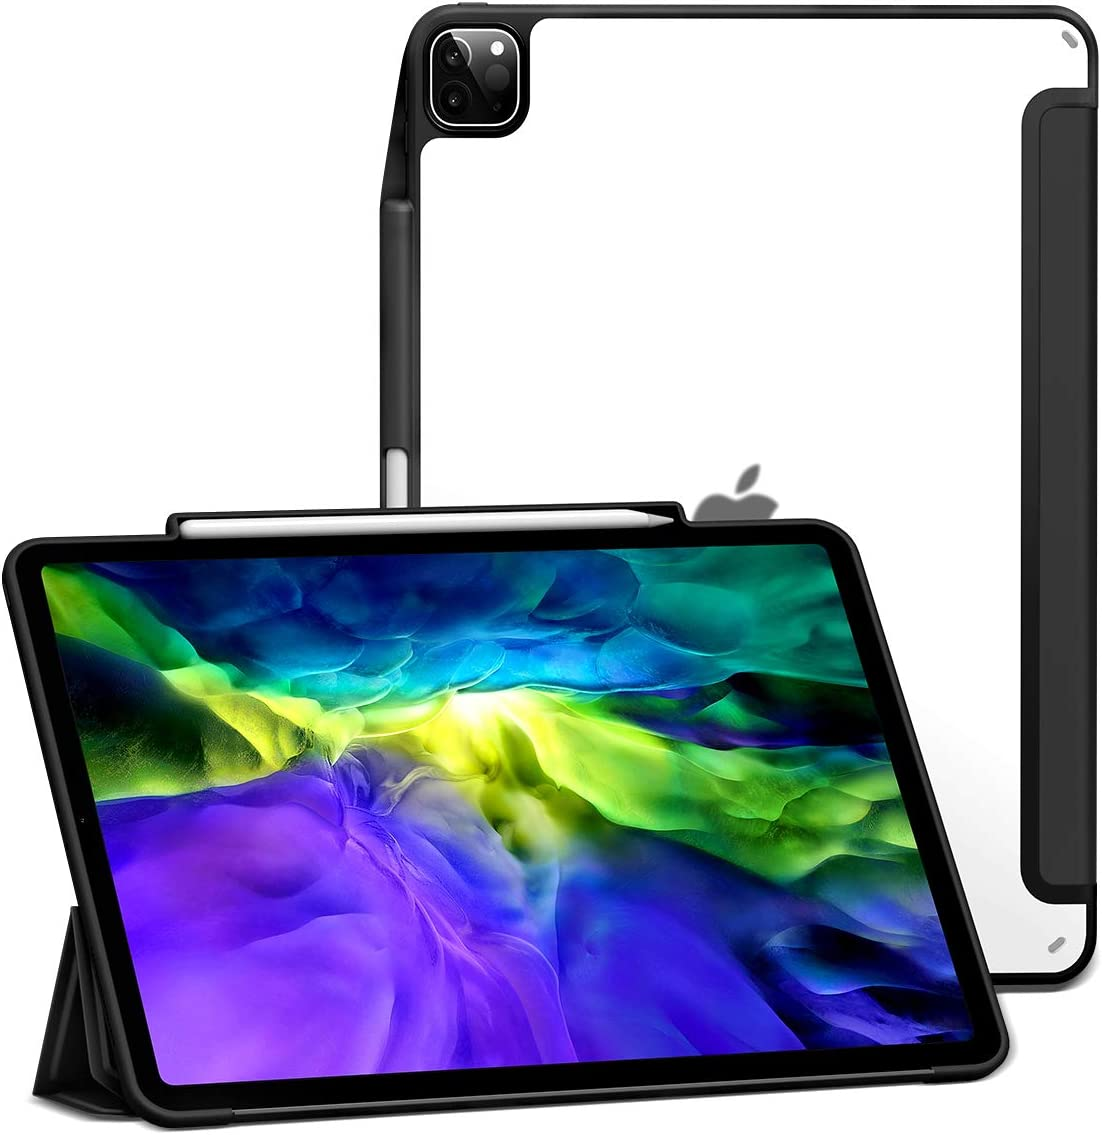 Amazon Com Xundd Case For Ipad Pro 12 9 4th Gen 2020 2018 With Pencil Holder Ultra Slim Translucent Back Shockproof Trifold Stand Auto Sleep Wake Smart Cover Support Apple Pencil 2 Pairing Charging Black